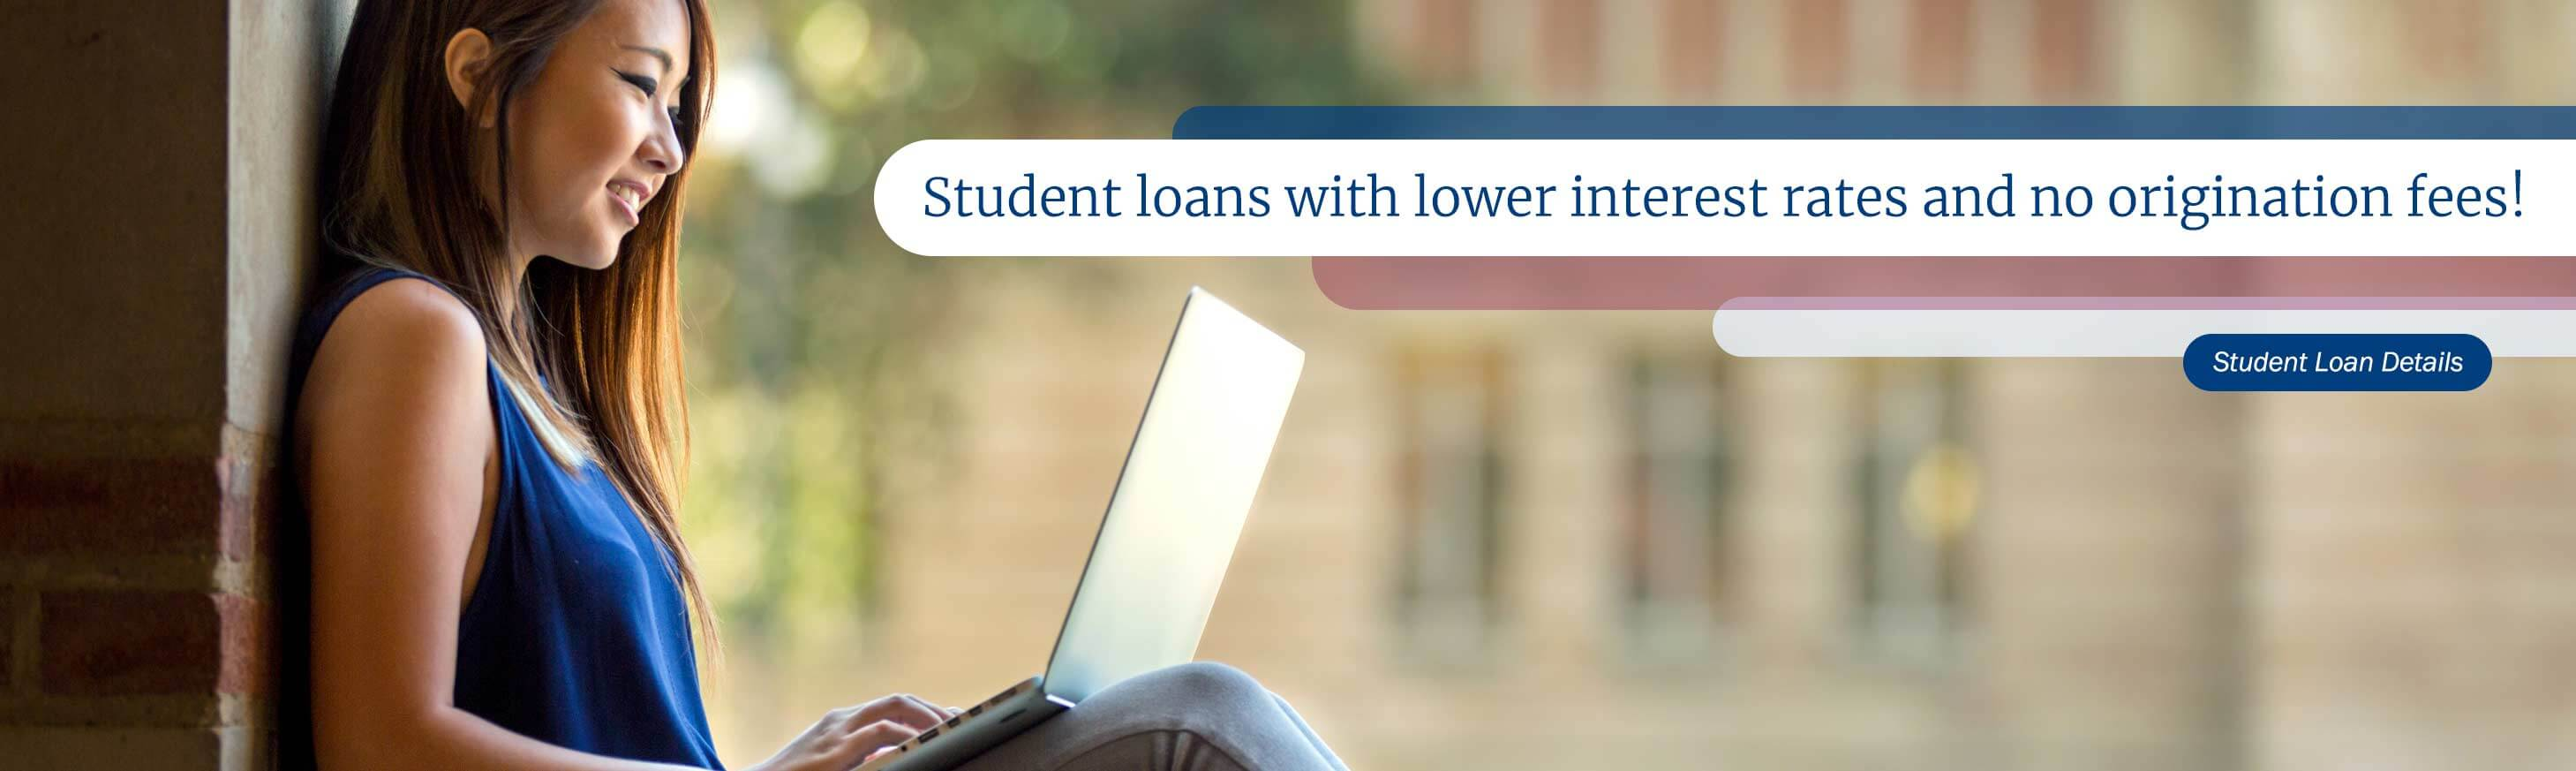 Student loans with lower interest rates and no origination fees! Student Loan Details